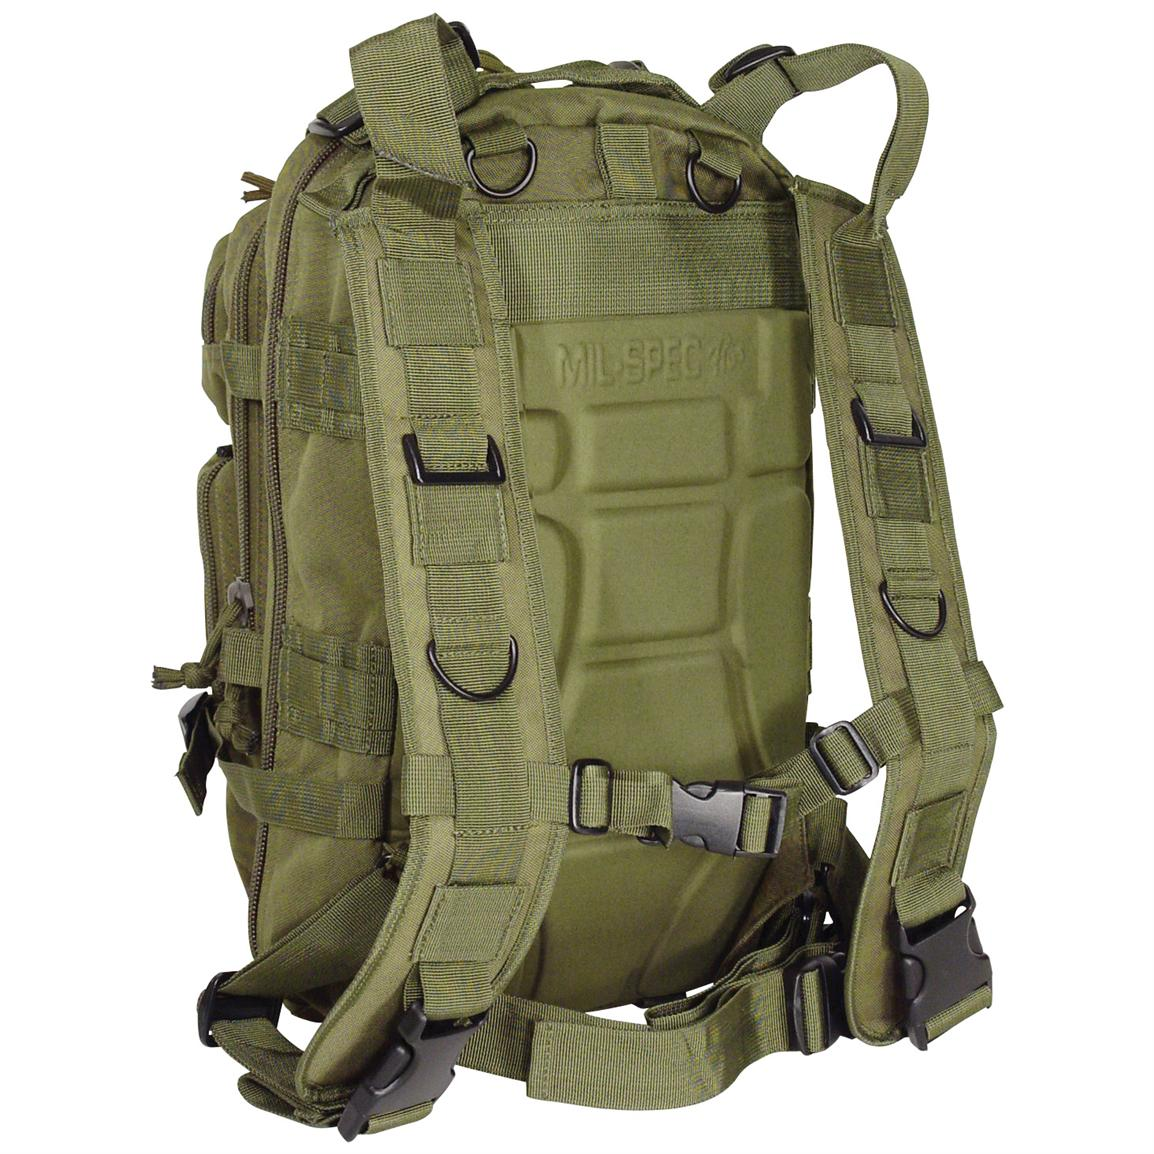 Level III Assault Pack, Olive Drab